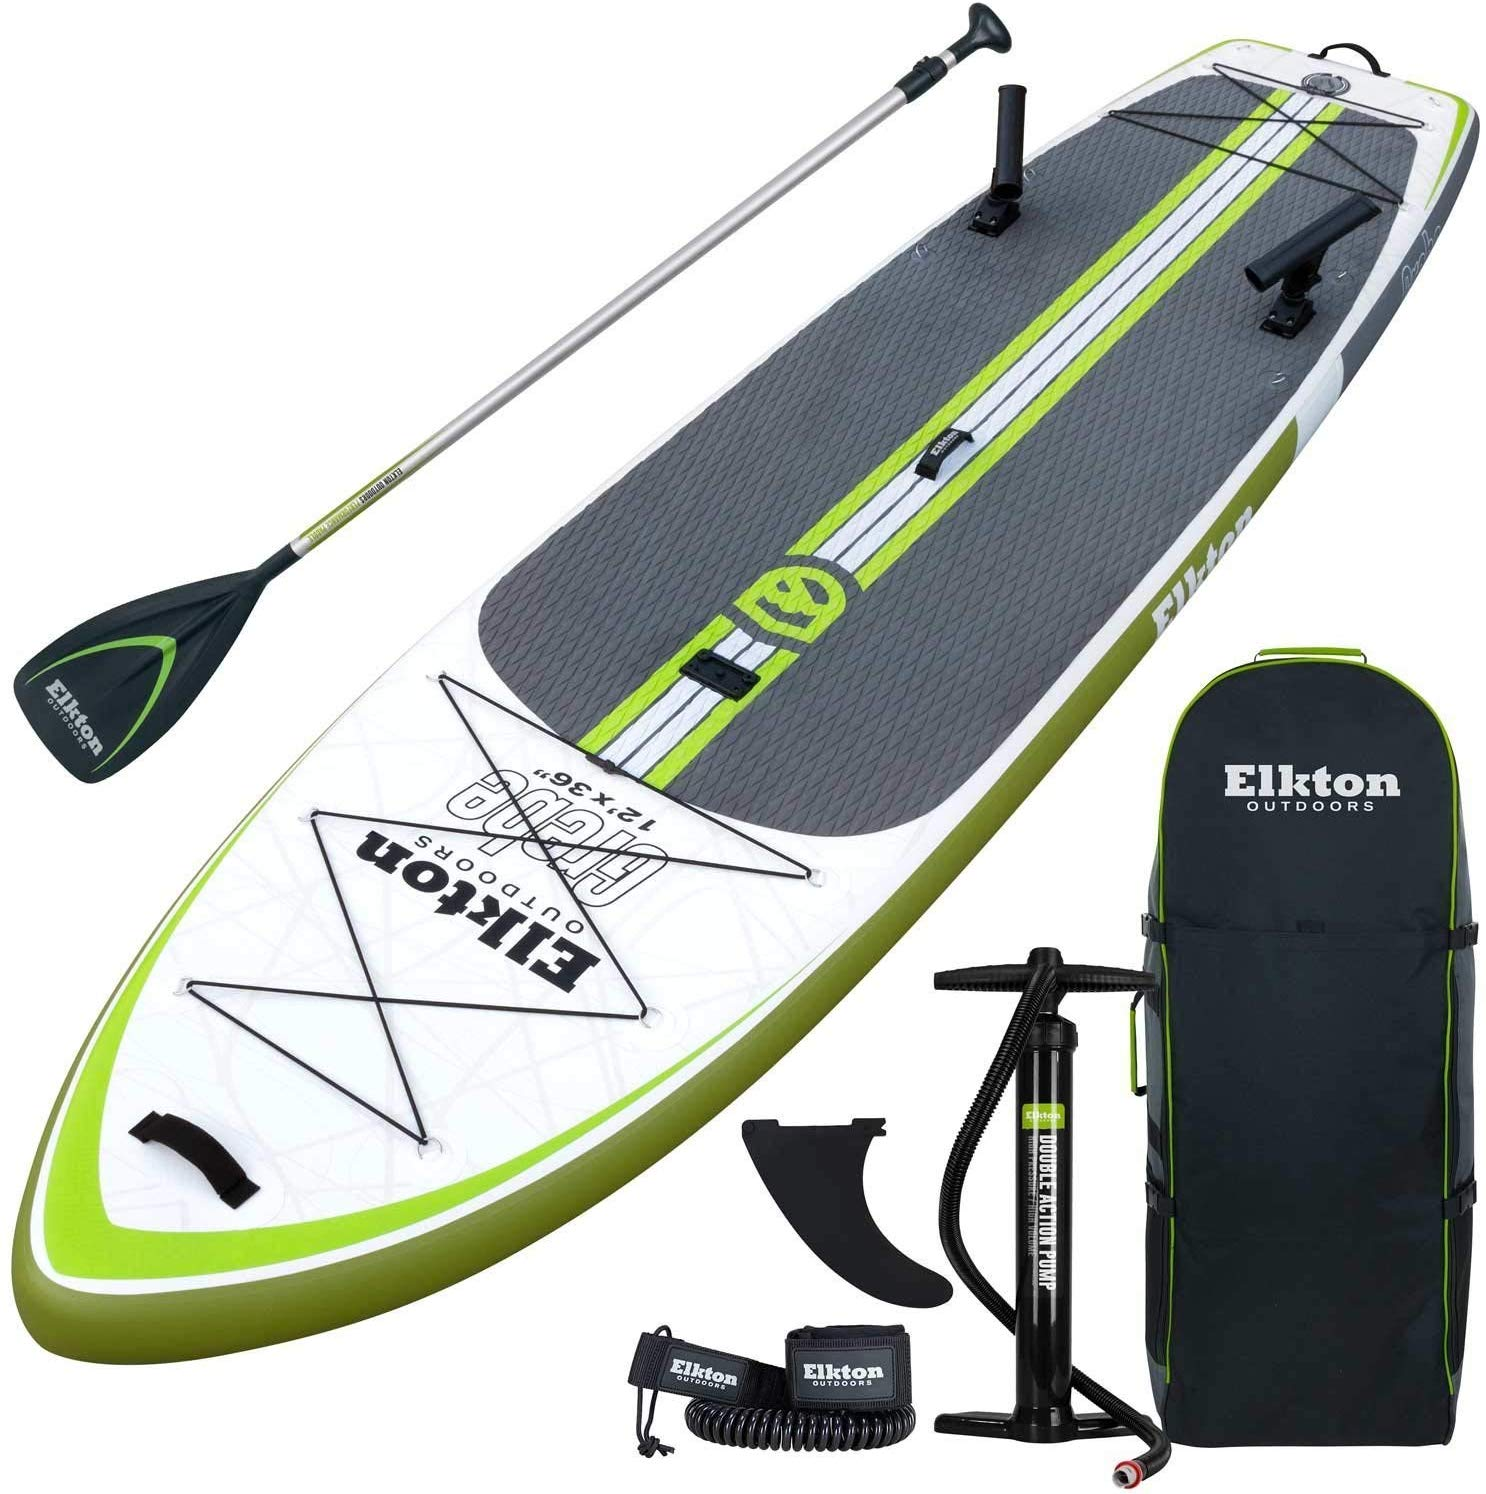 Elkton Outdoors Grebe Fishing Inflatable Stand Up Paddle Board